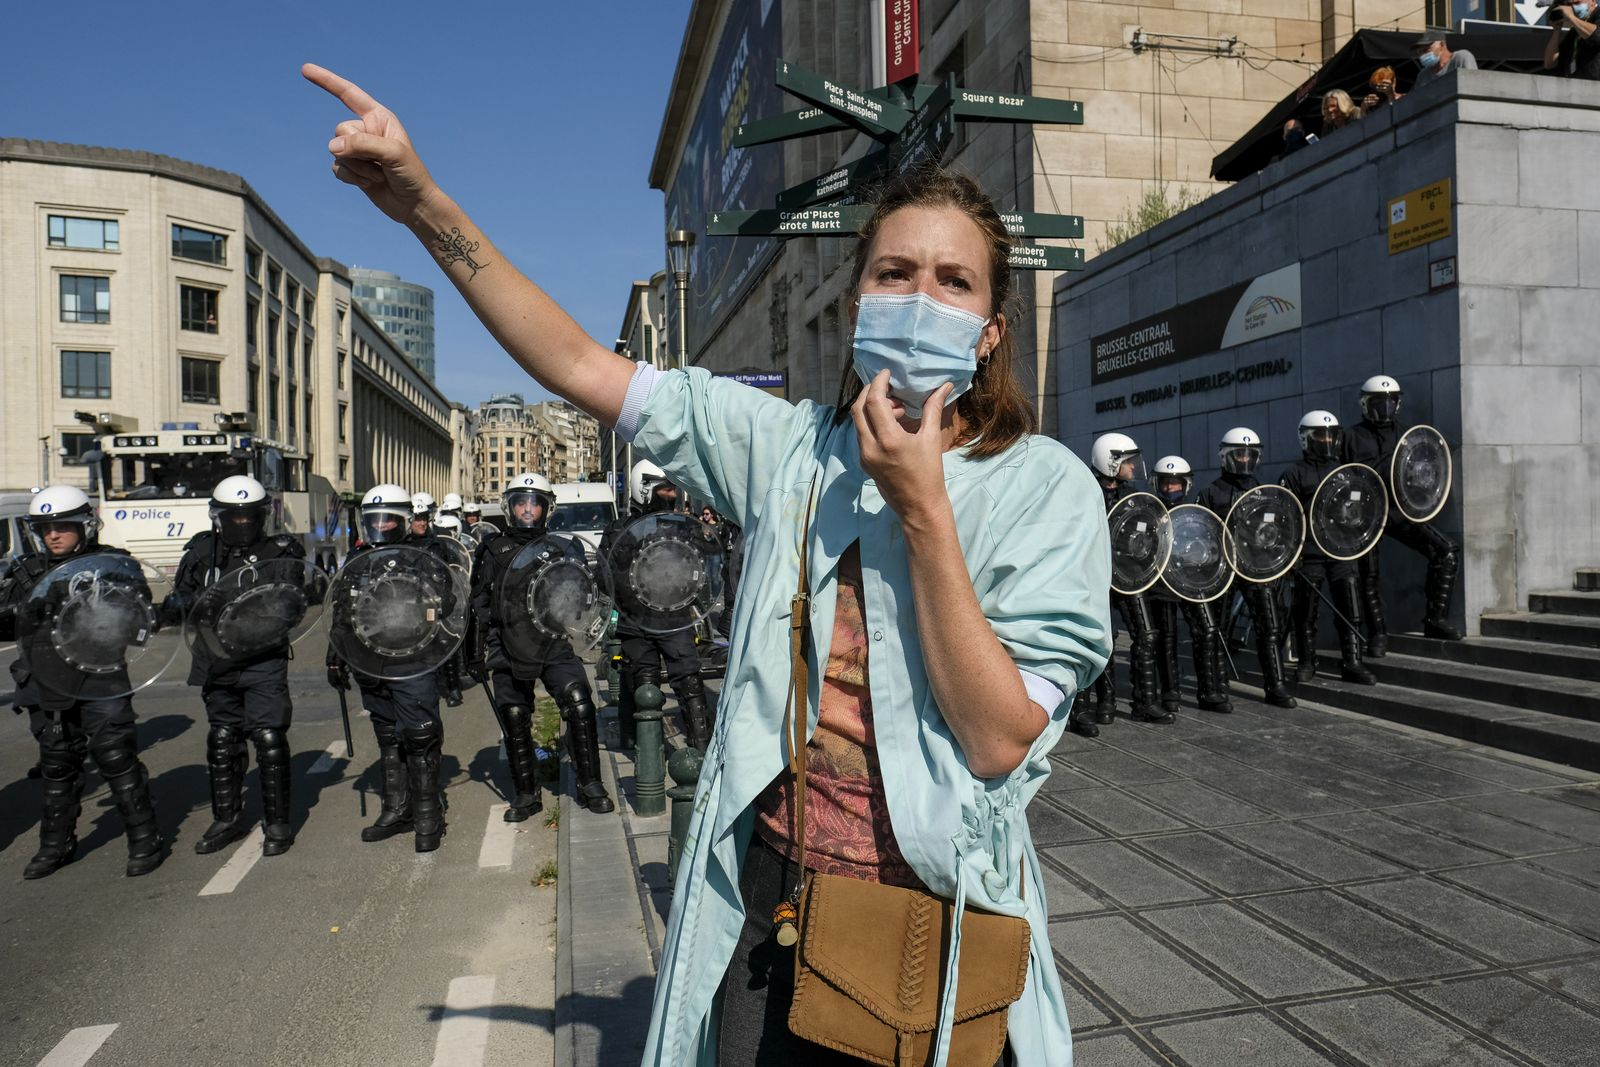 Health sector protest in Brussels, Belgium - 13 Sep 2020